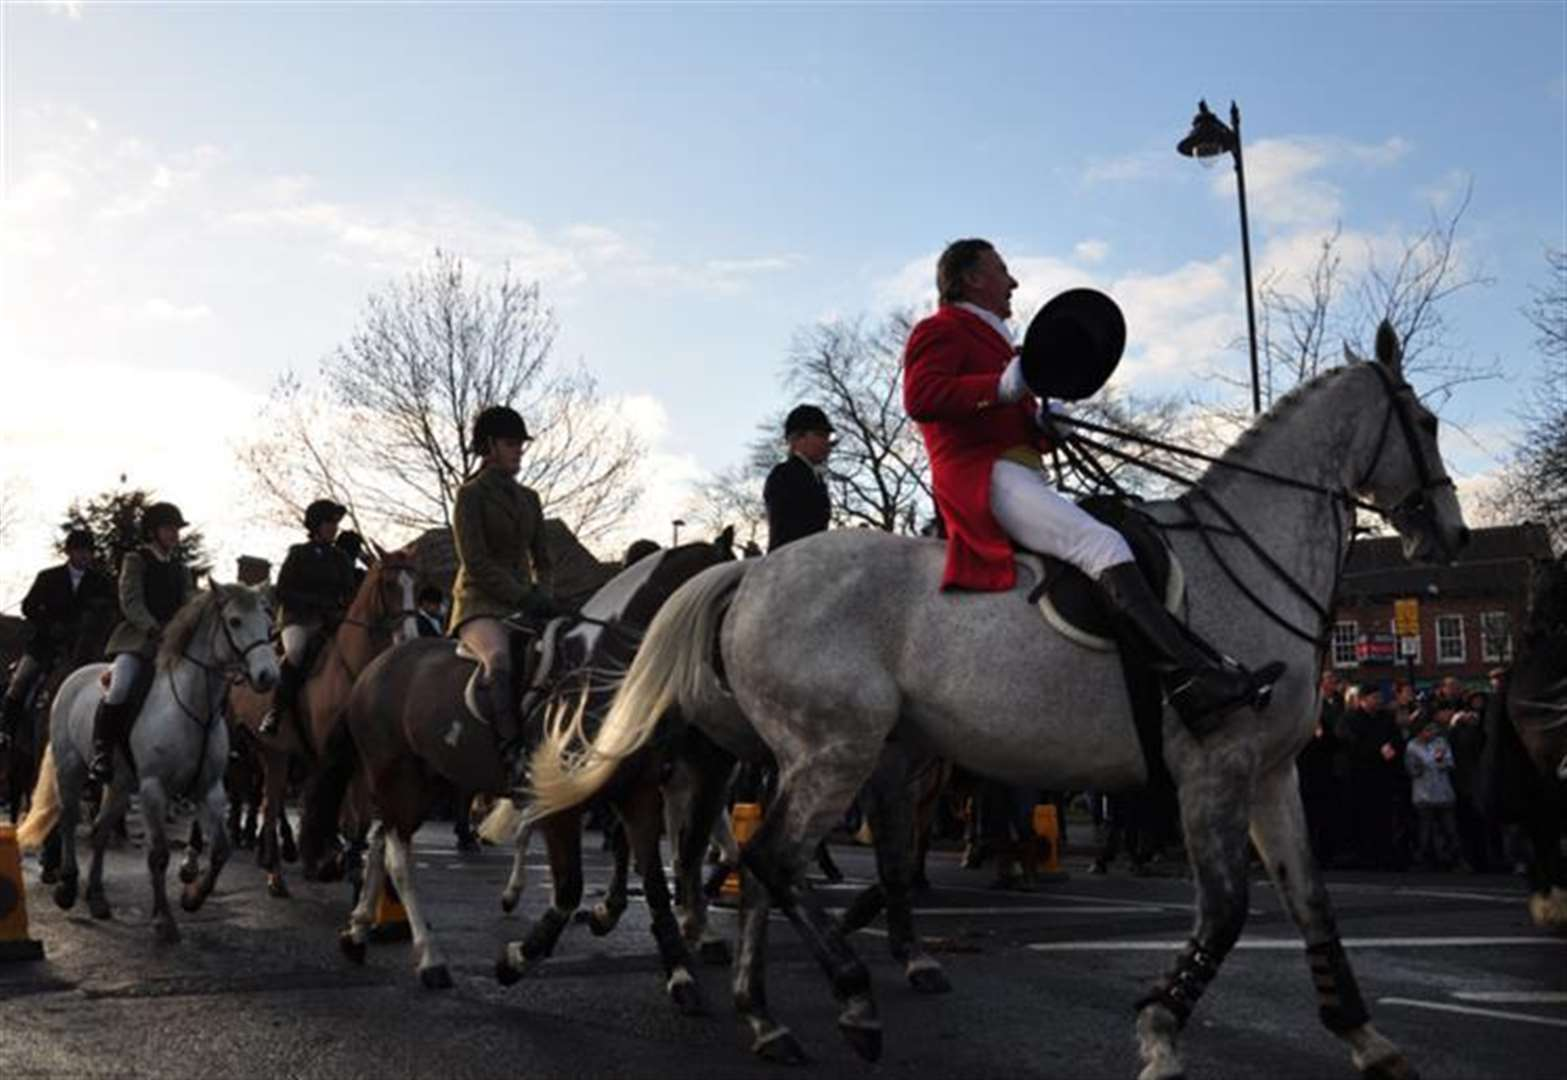 Local Labour Party tells police it opposes Boxing Day meet of the Belvoir Hunt in Grantham